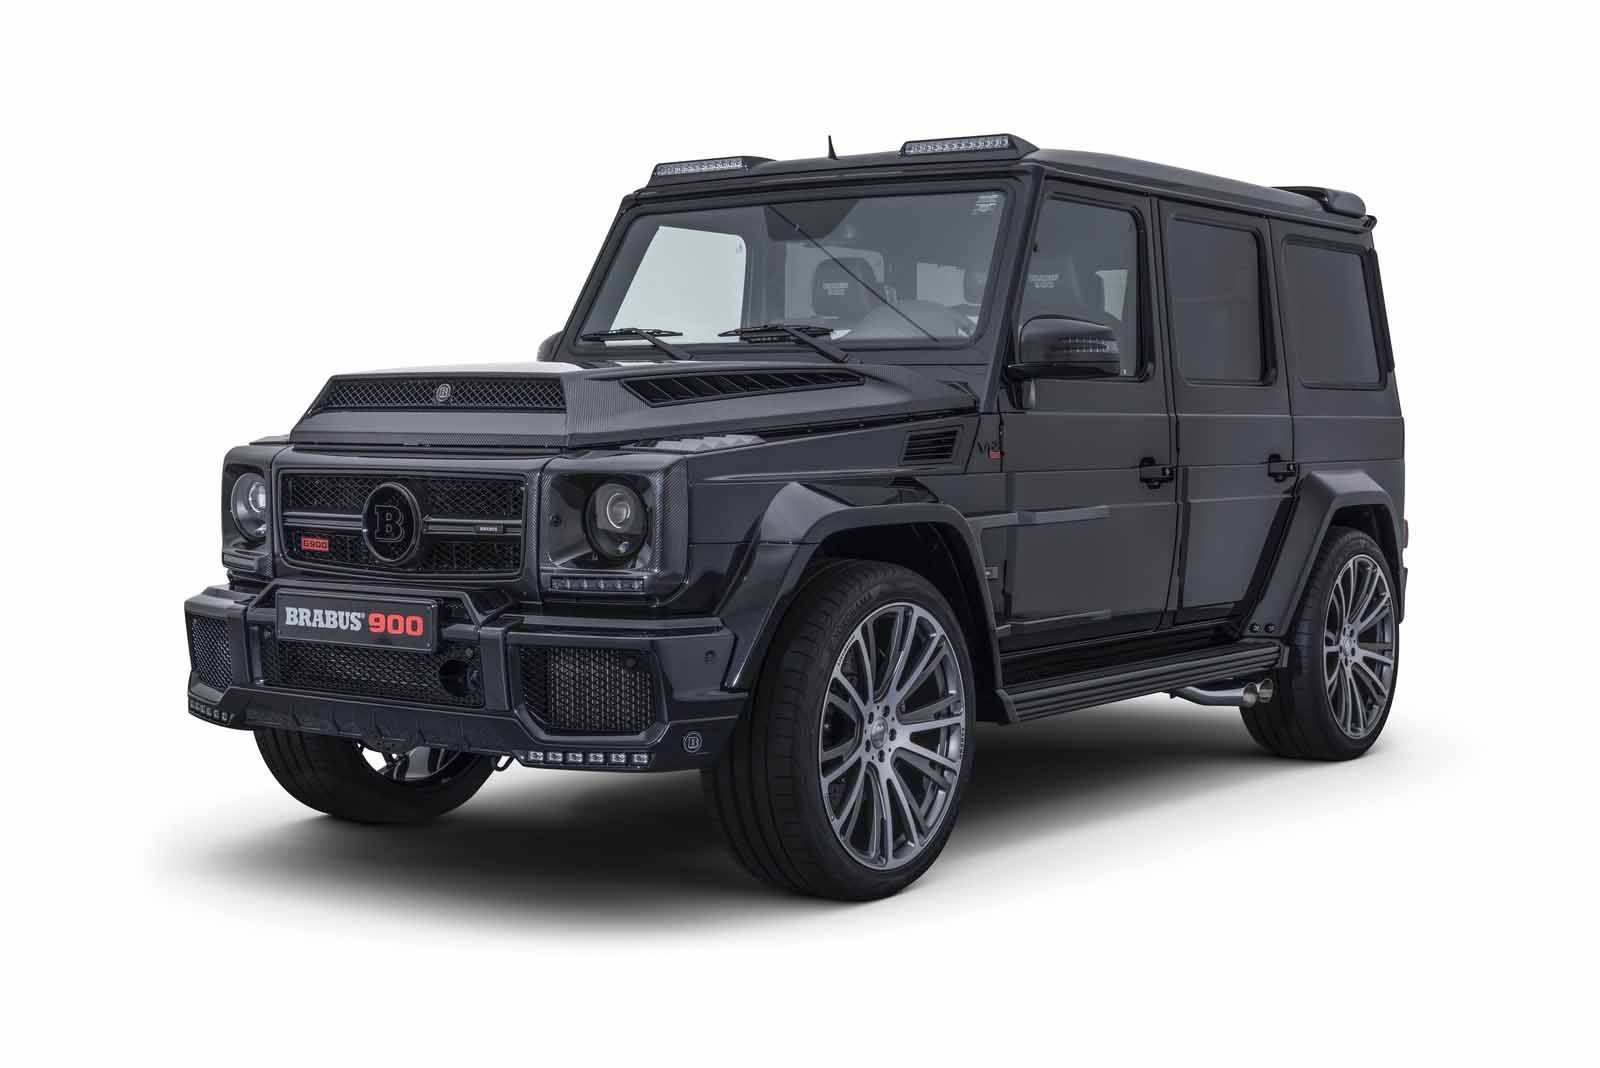 Latest Brabus Has Built A 900 Hp G Wagen For Crazy People Free Download Original 1024 x 768